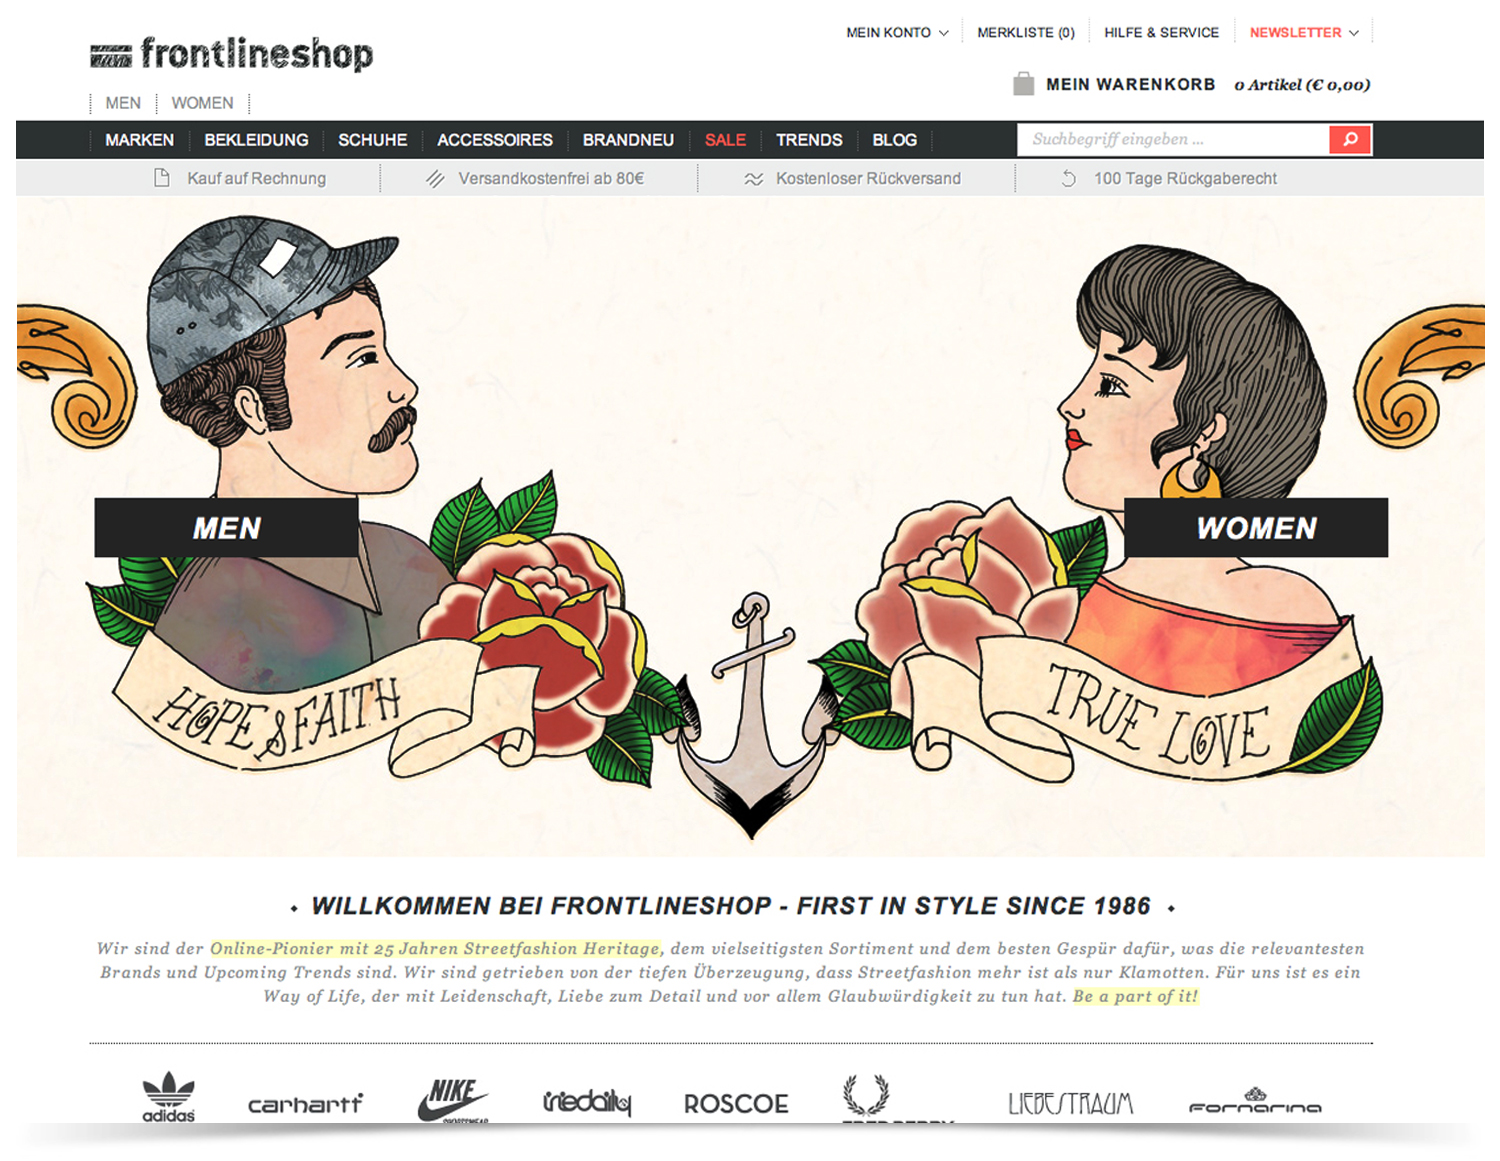 rbtq_Illustration_Seiser_Illustratorin_Hamburg_frontlineshop_Design_Landingpage_1.jpg